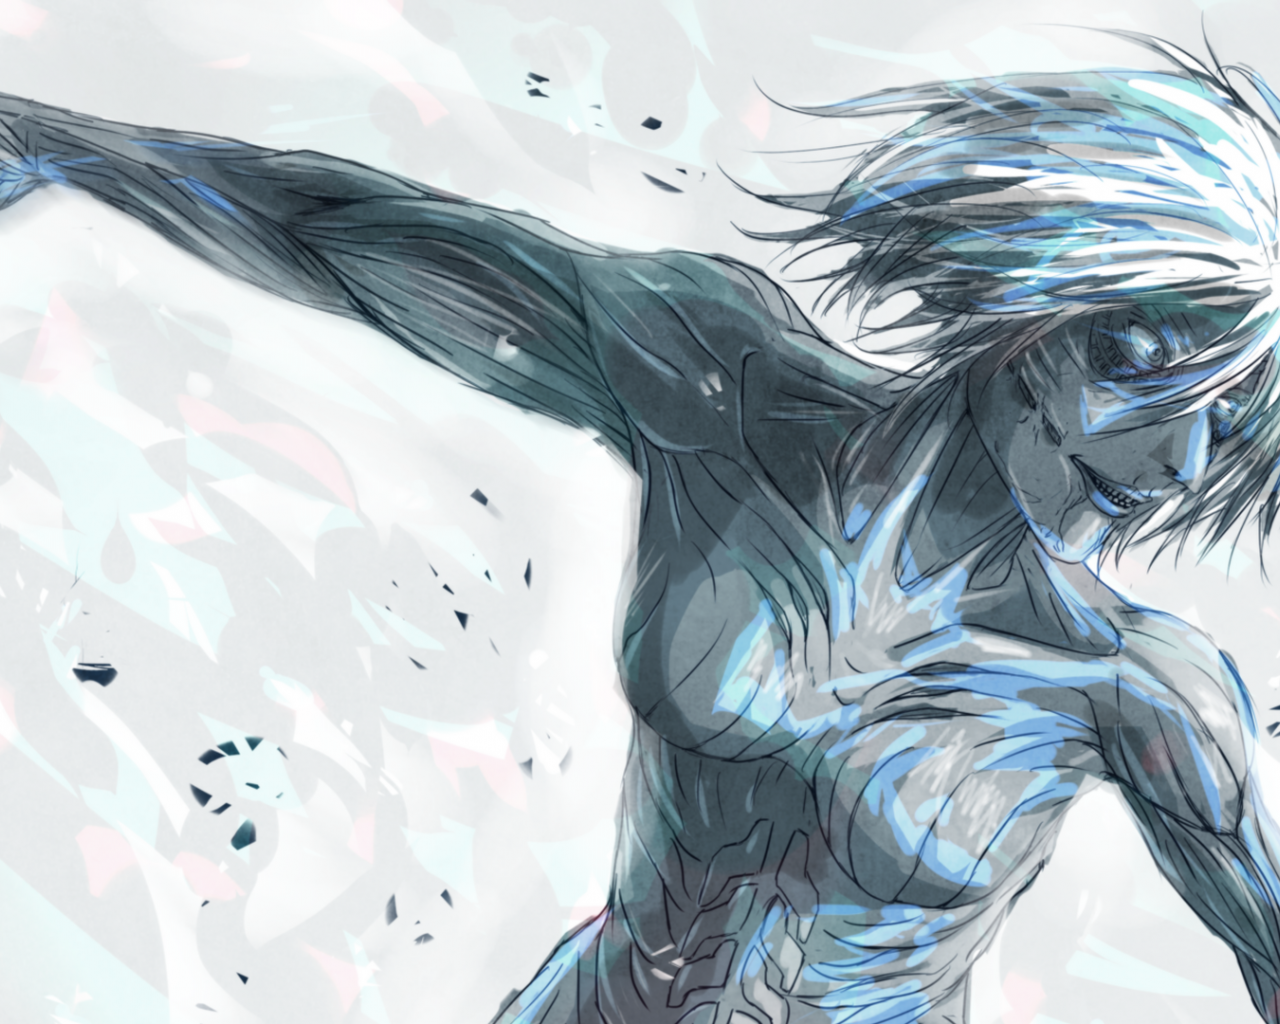 Free Download Anime Attack On Titan Annie Leonhart Wallpaper 1920x1080 For Your Desktop Mobile Tablet Explore 50 Attack On Titan Annie Wallpaper Attack On Titans Wallpaper Attack On Titan Hd Wallpapers